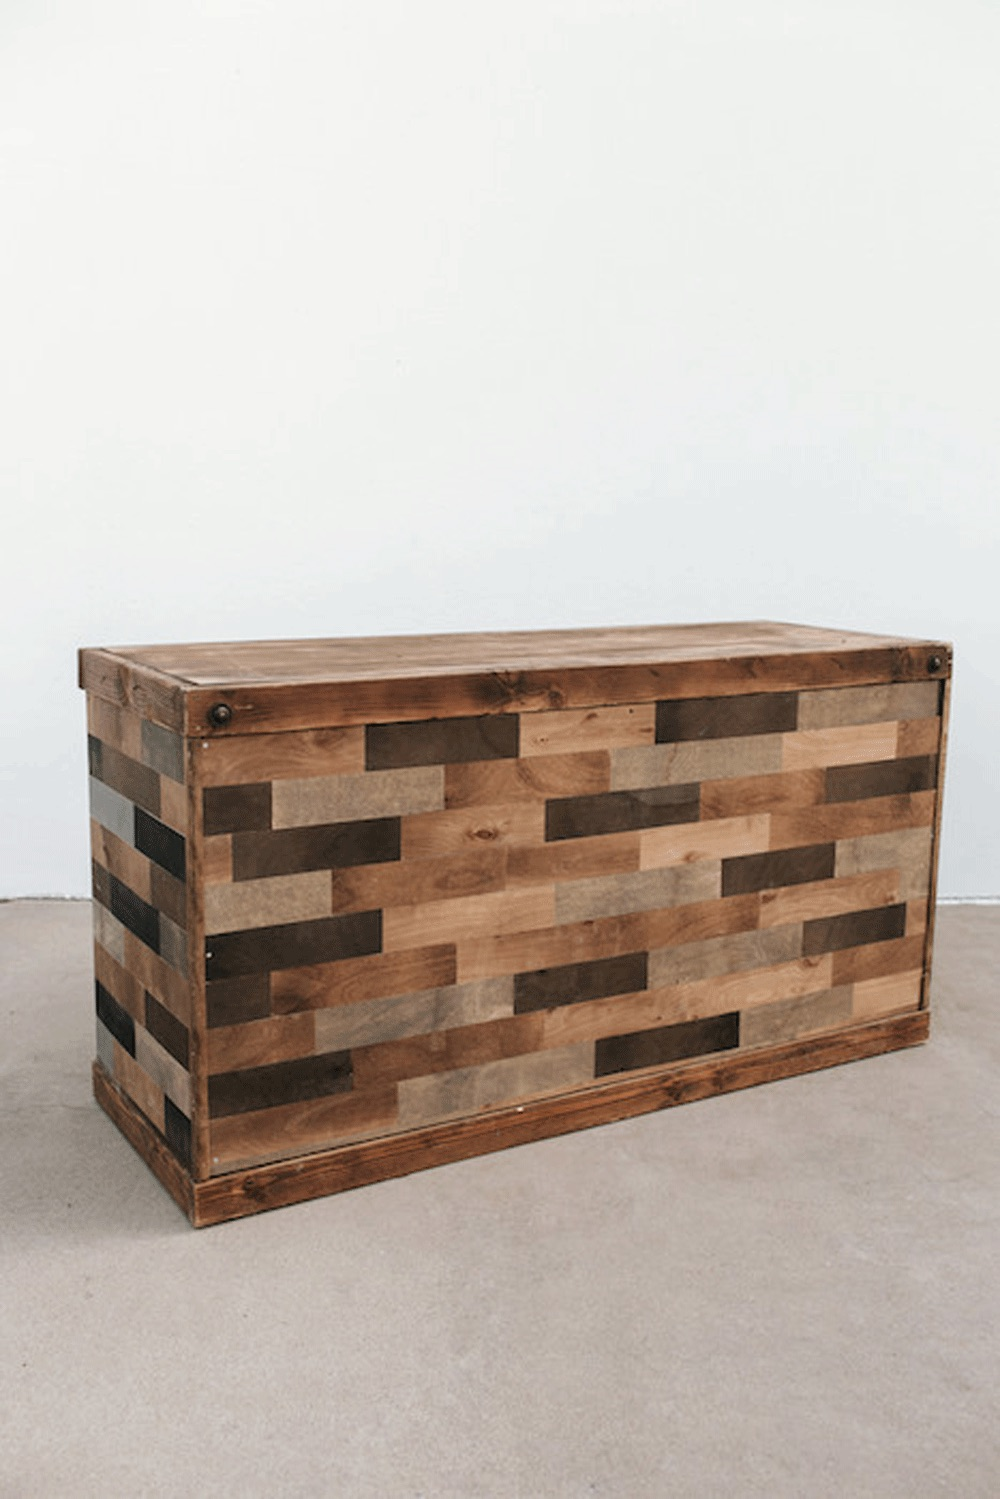 Ombre Wooden Bar 6ft $275